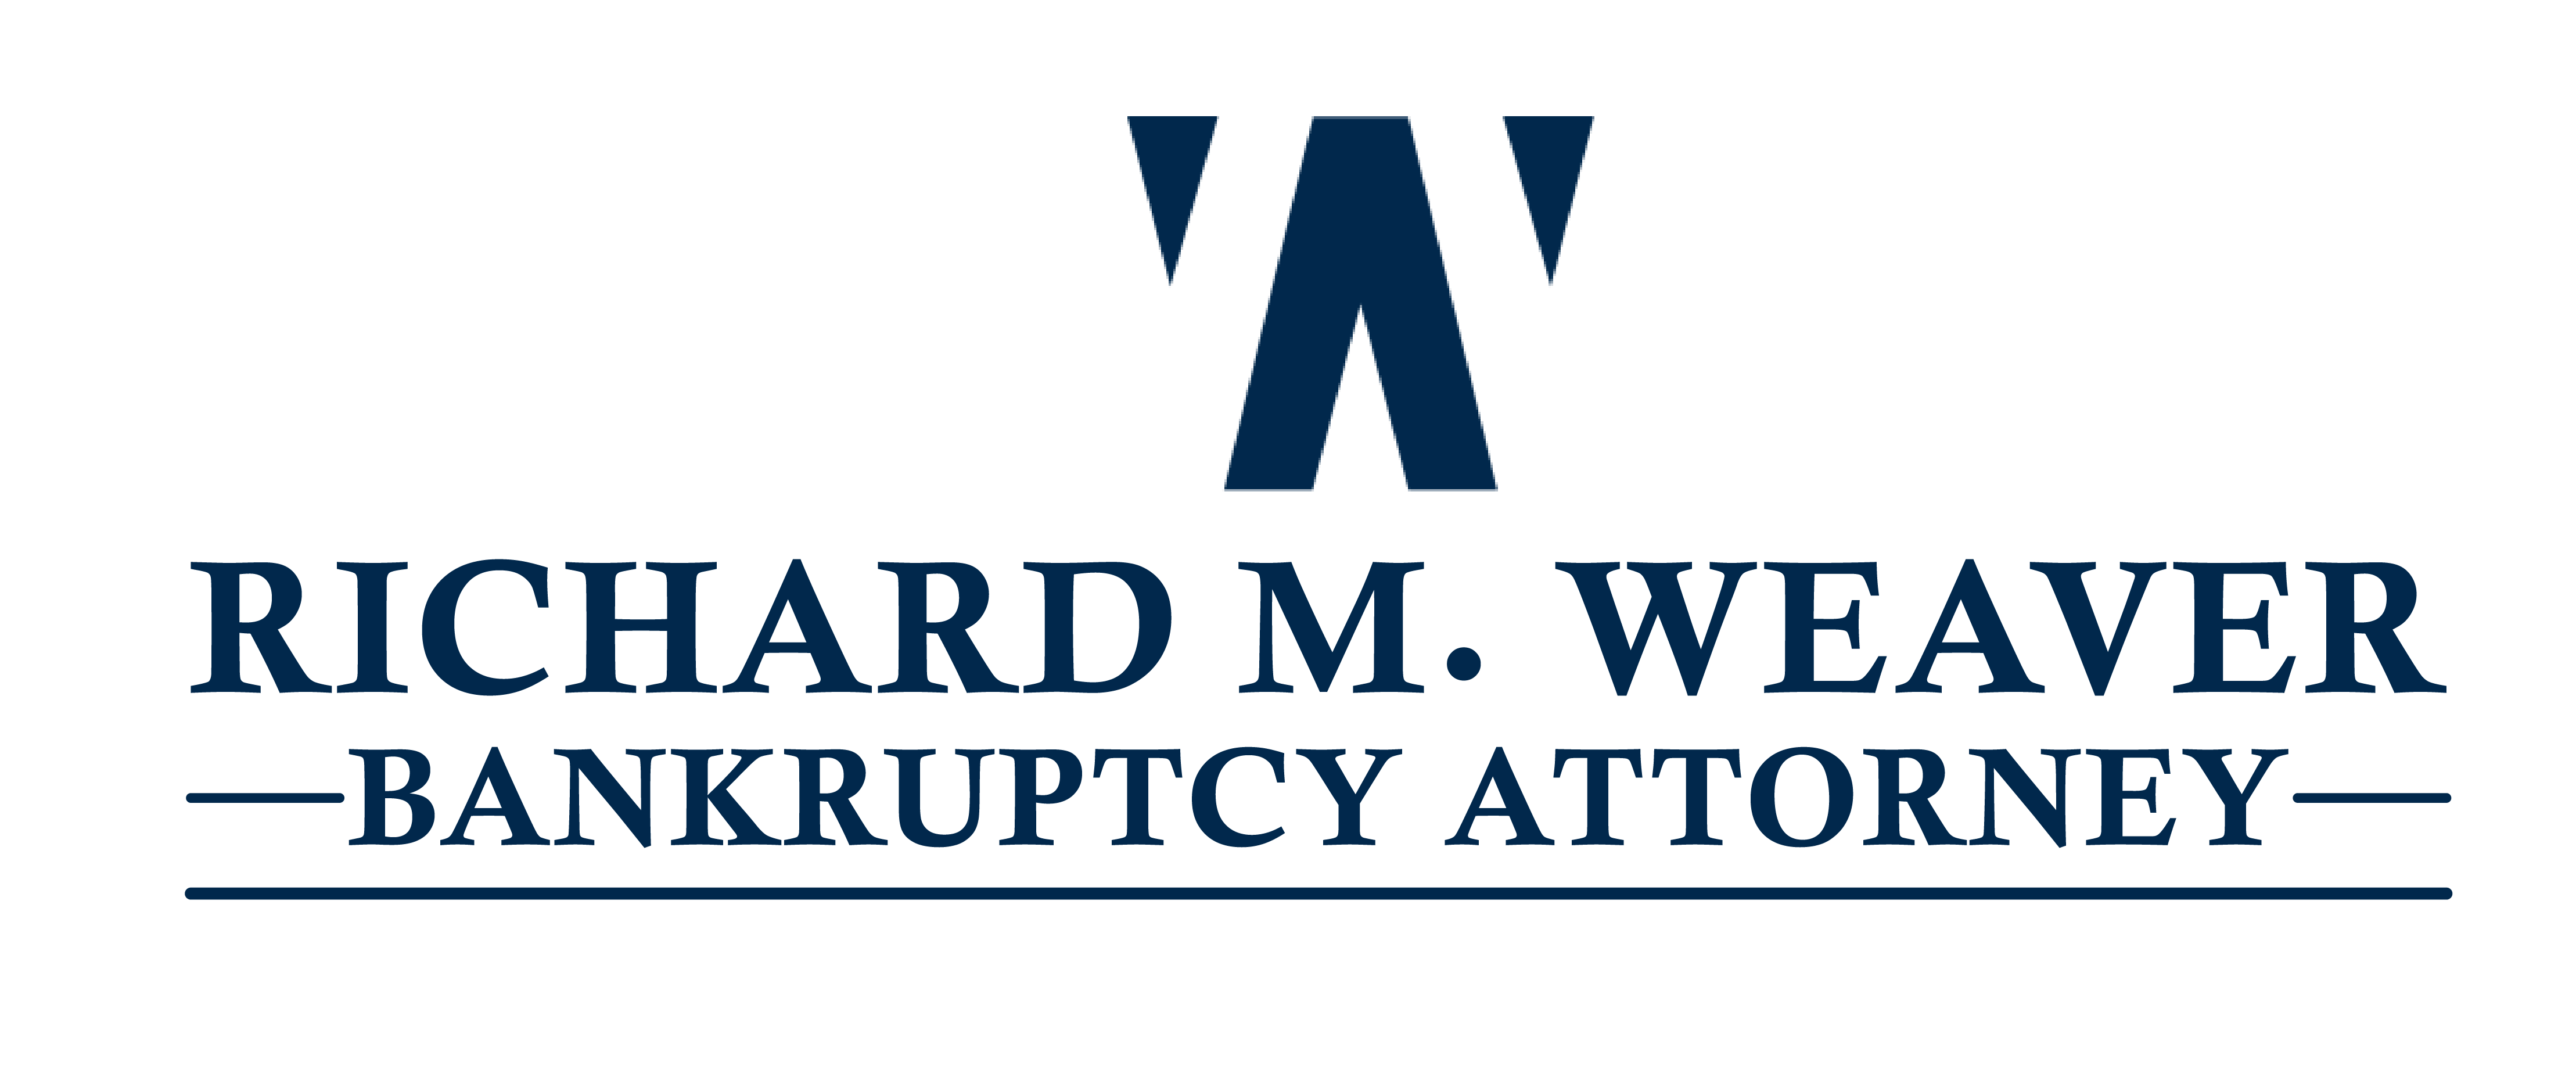 Richard M. Weaver Bankruptcy Attorney Helps Clients With Bankruptcy Issues in Dallas, TX 6